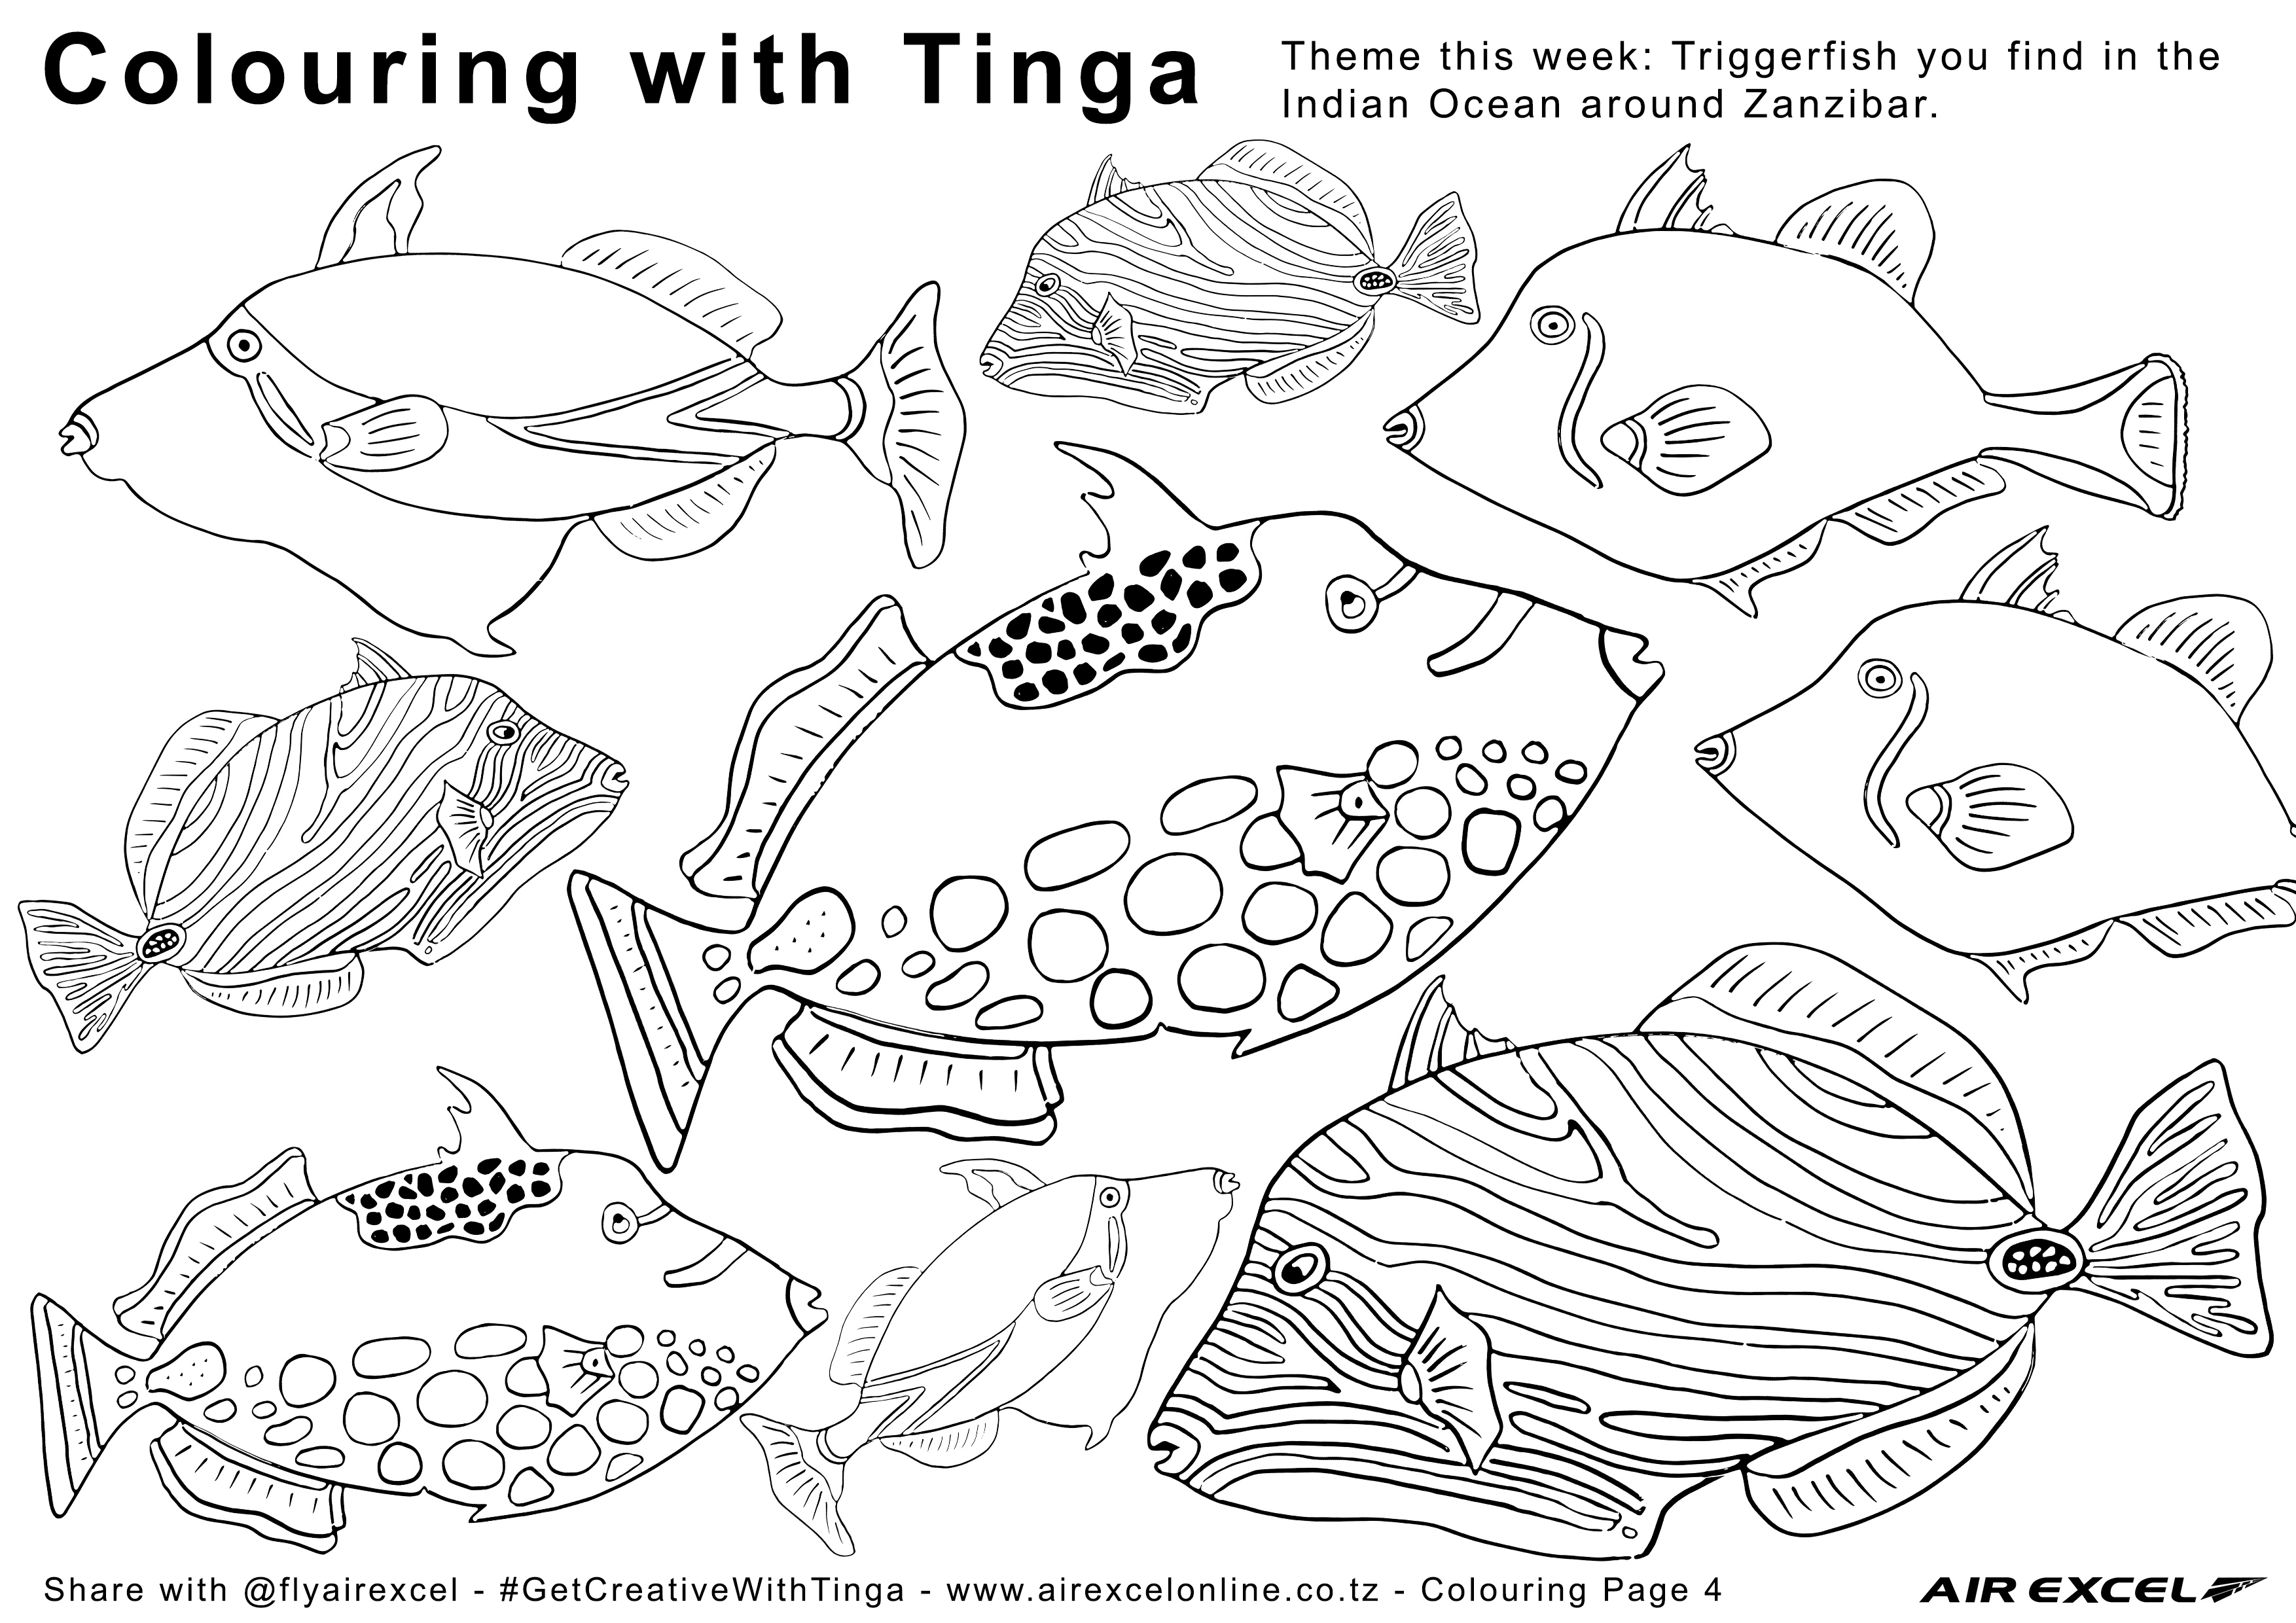 Air Excel Colouring Page 4 Triggerfish